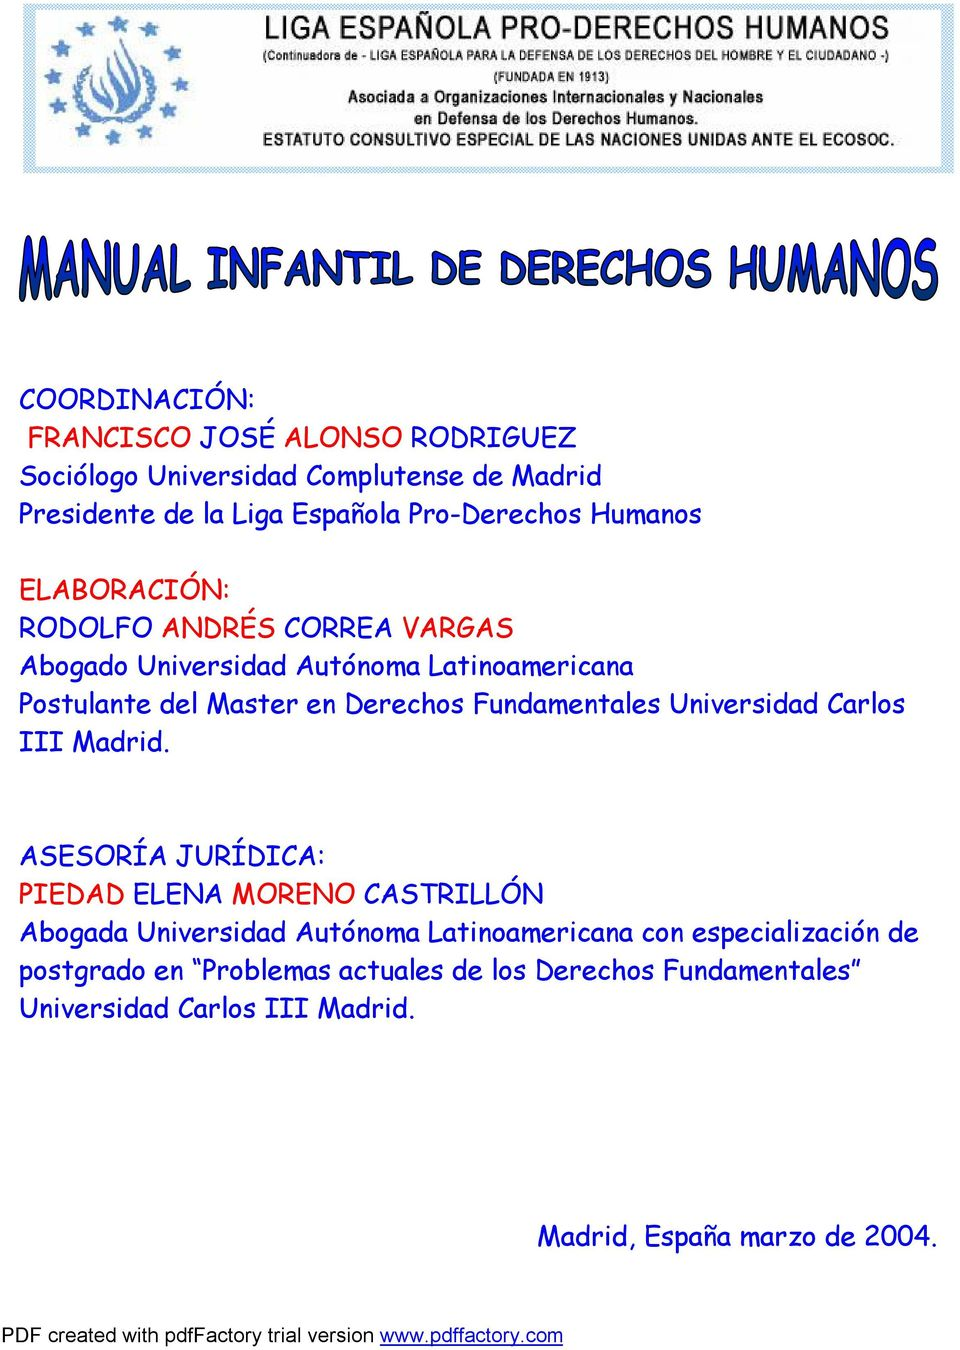 Fundamentales Universidad Carlos III Madrid.